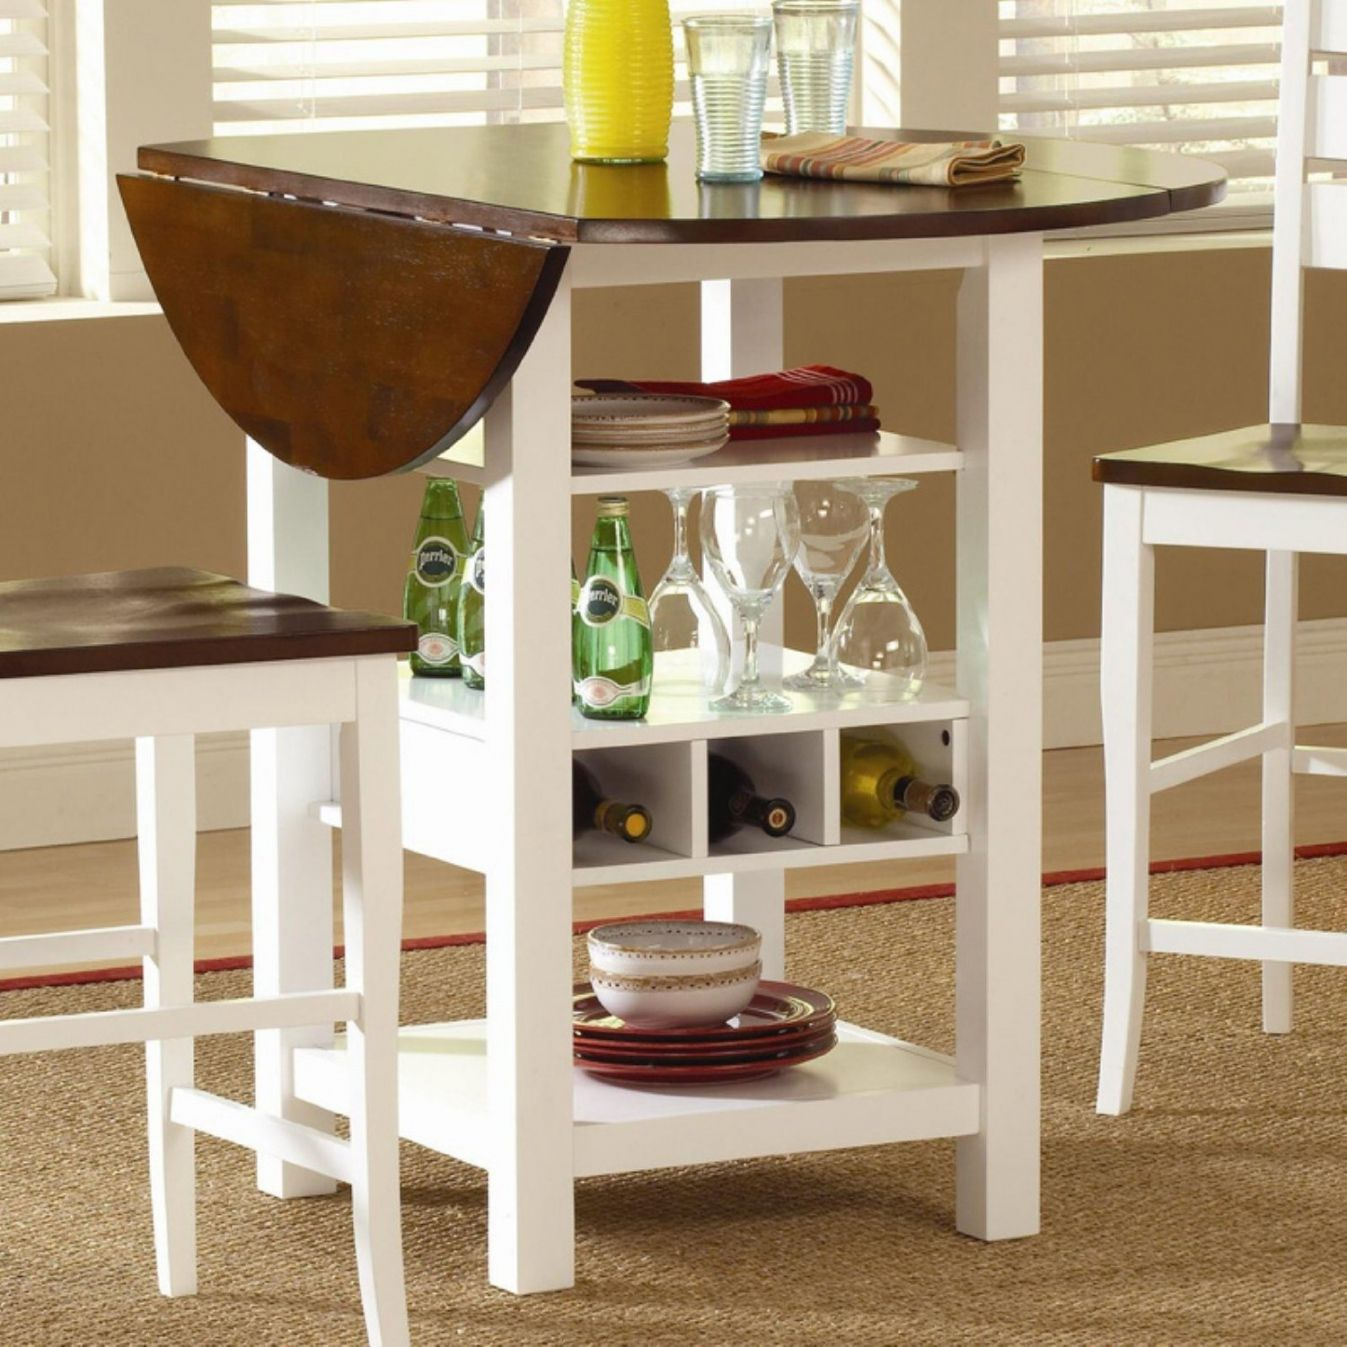 Kitchen tables target modern furniture cheap check more at http www nikkitsfun com kitchen tables target